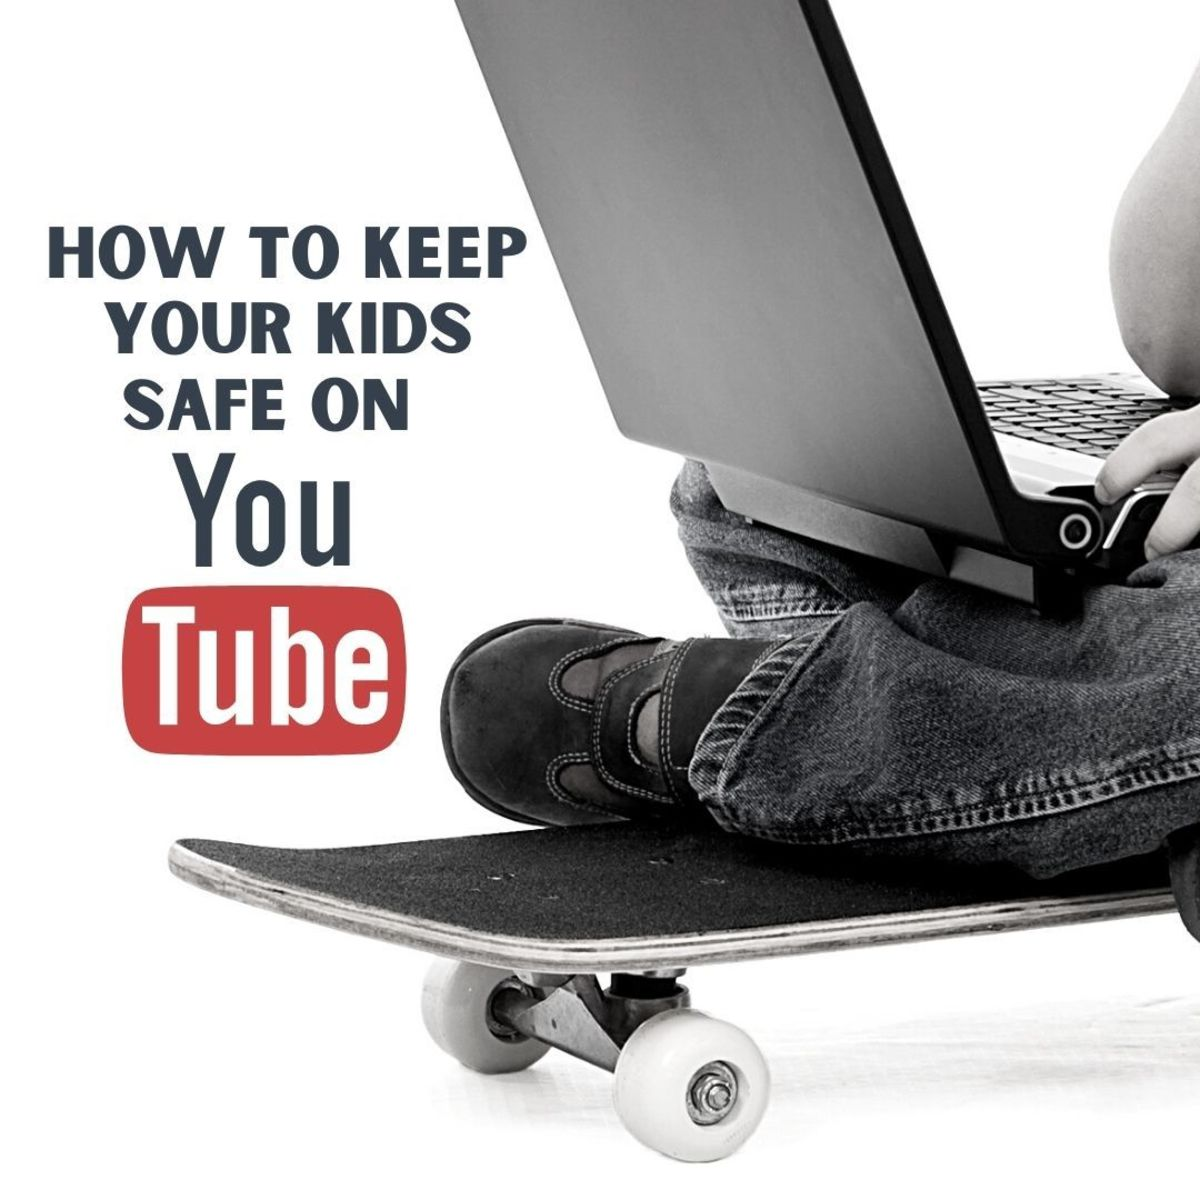 How to make a safe YouTube account for your child